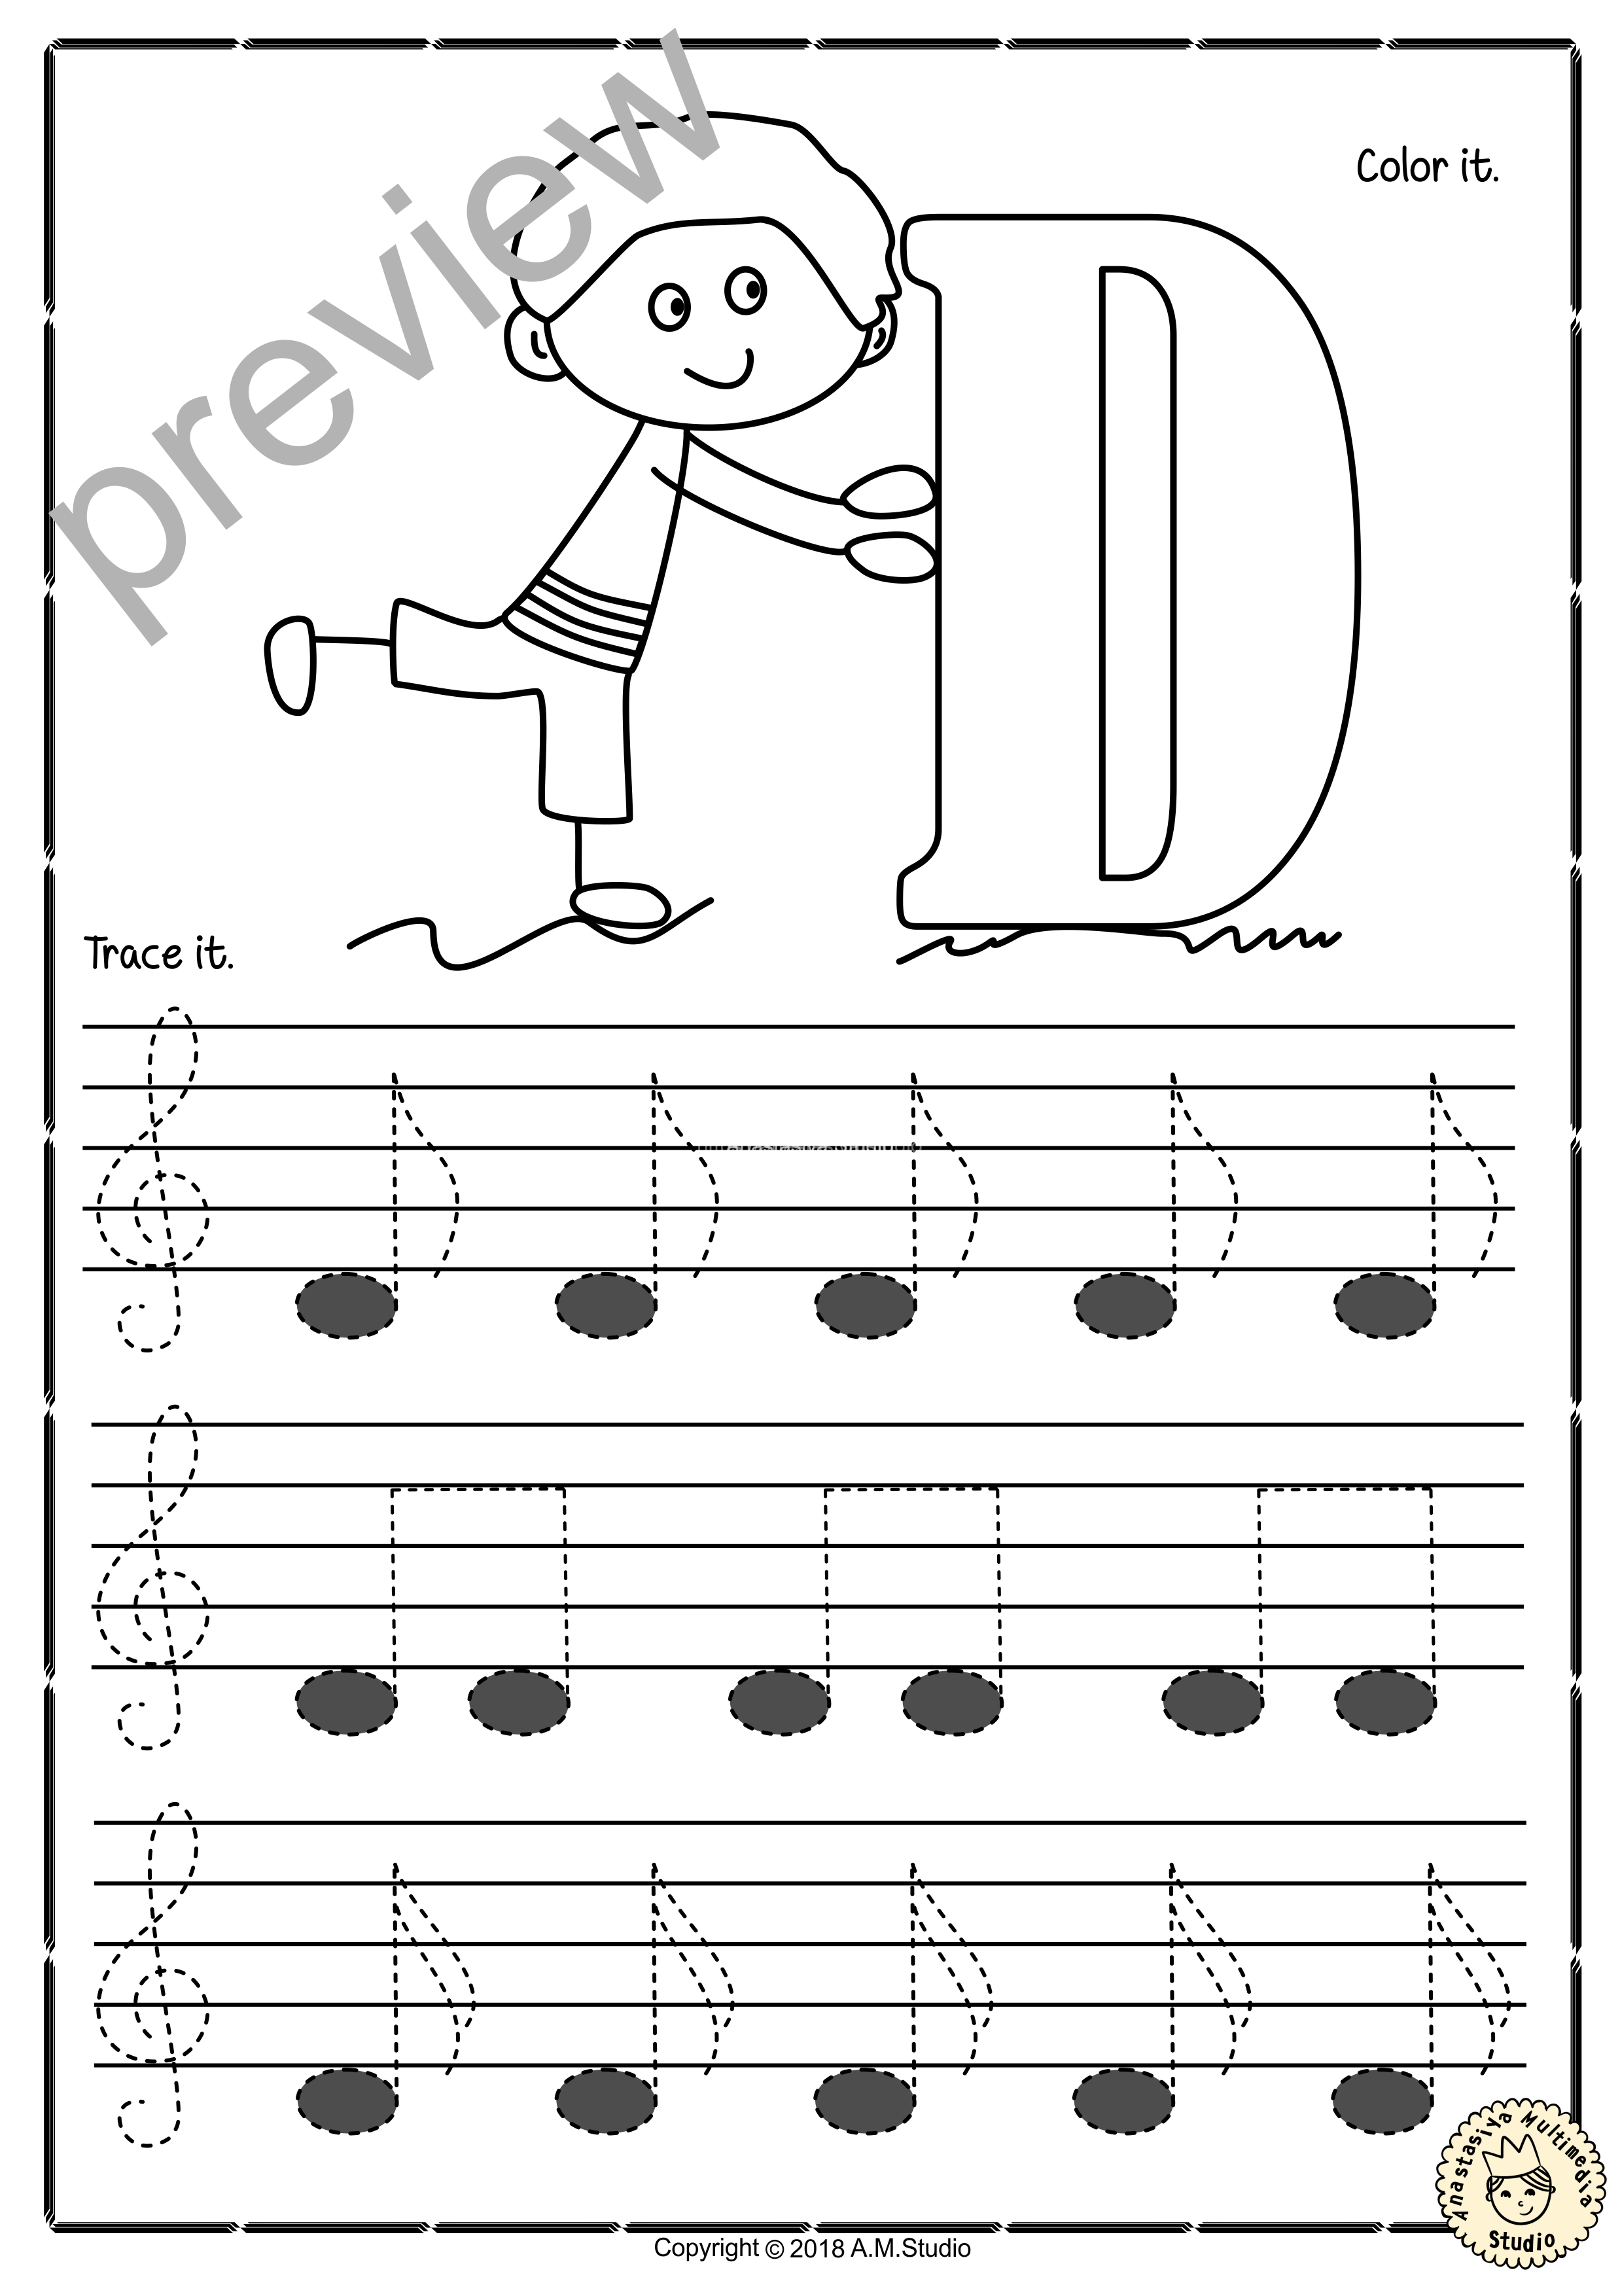 Tracing Music Notes Worksheets For Kids Treble Clef 5